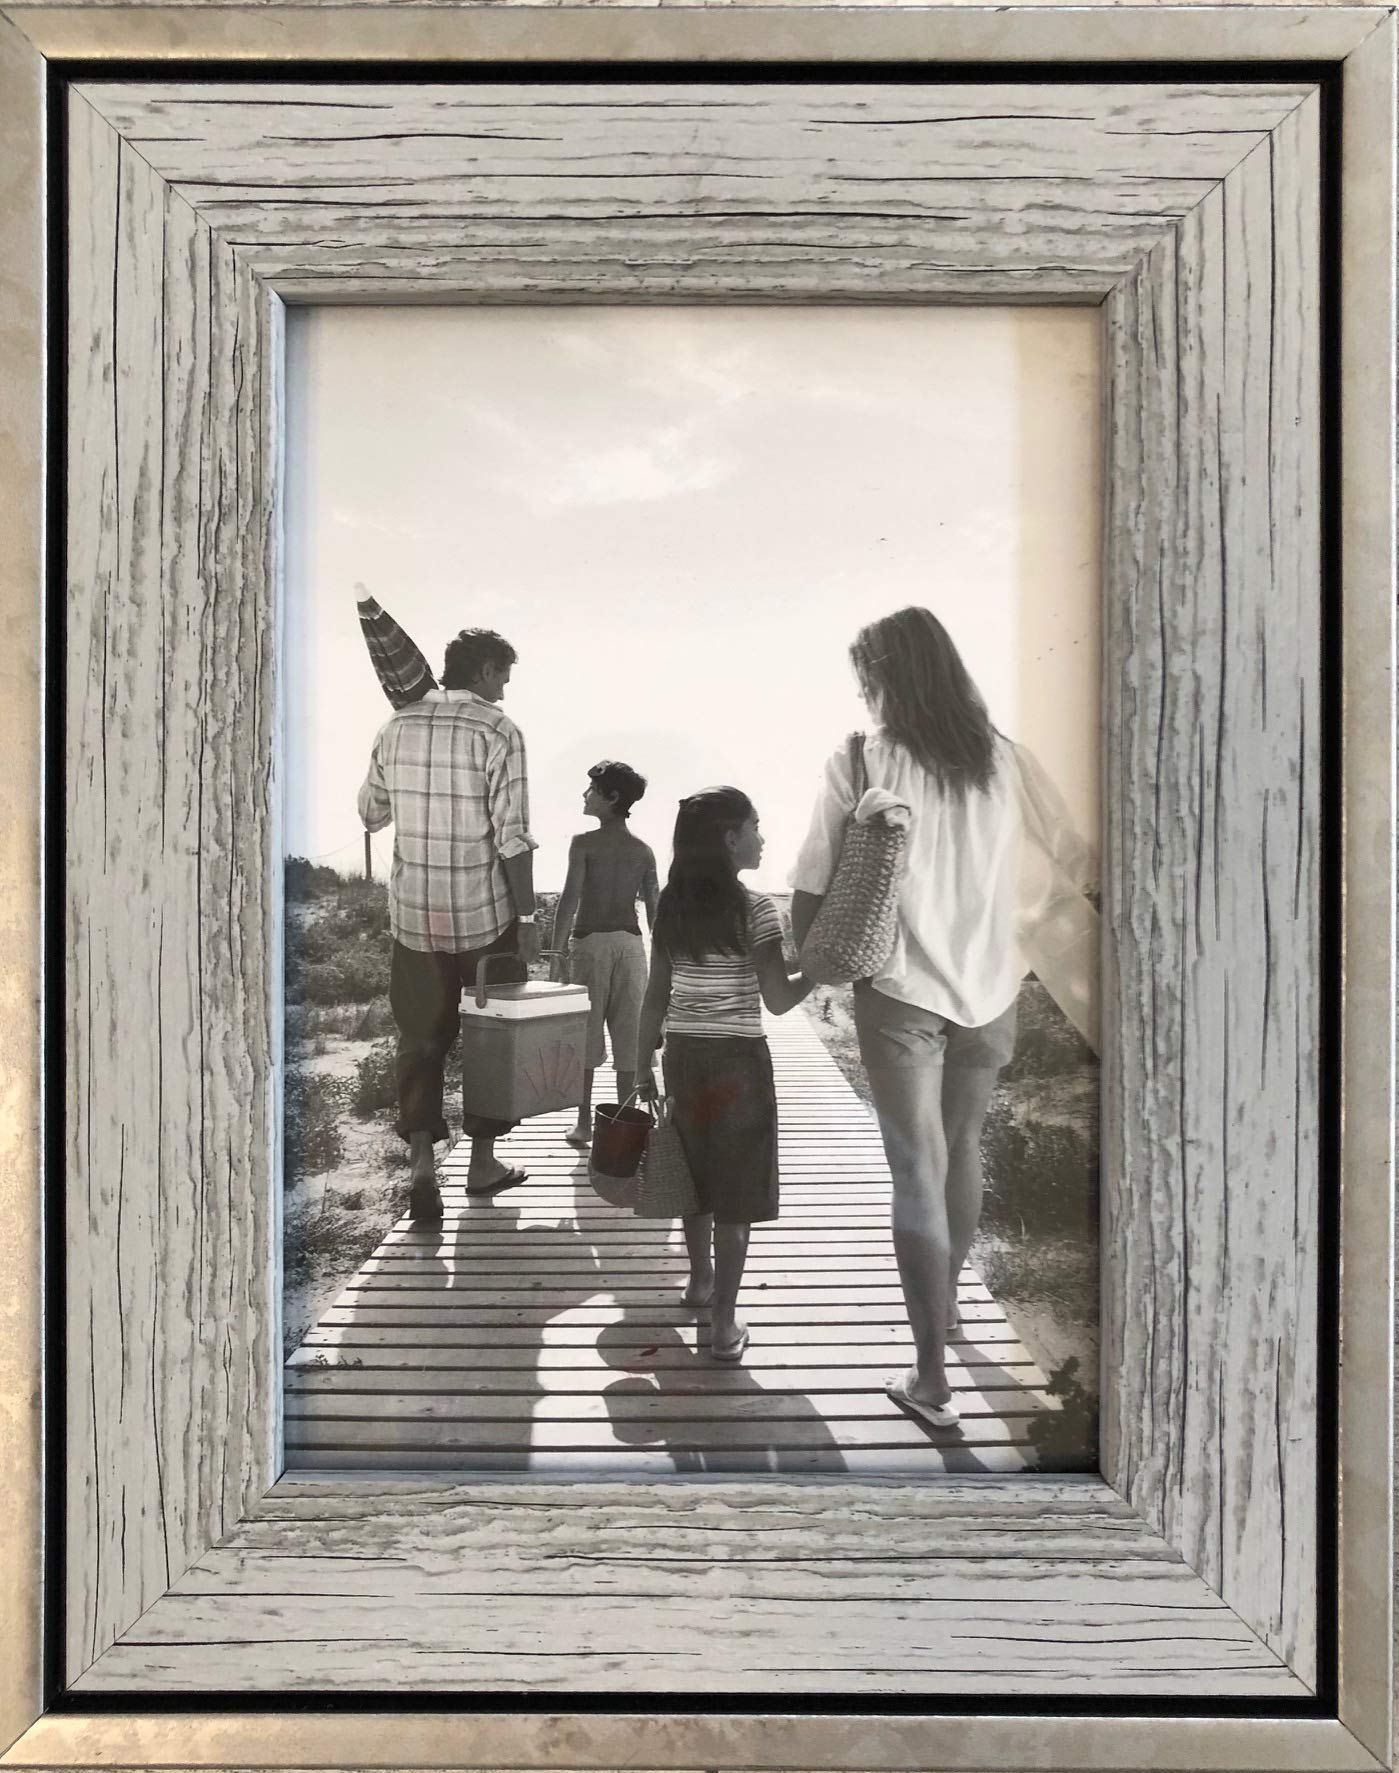 Tasse Verre 5x7 Rustic Frames (3-Pack) - Distressed Farmhouse Industrial Frame - Ready to Hang or Stand - Built-in Easel - Silver Galvanized Metal Look with Wood Insert by Tasse Verre (Image #7)